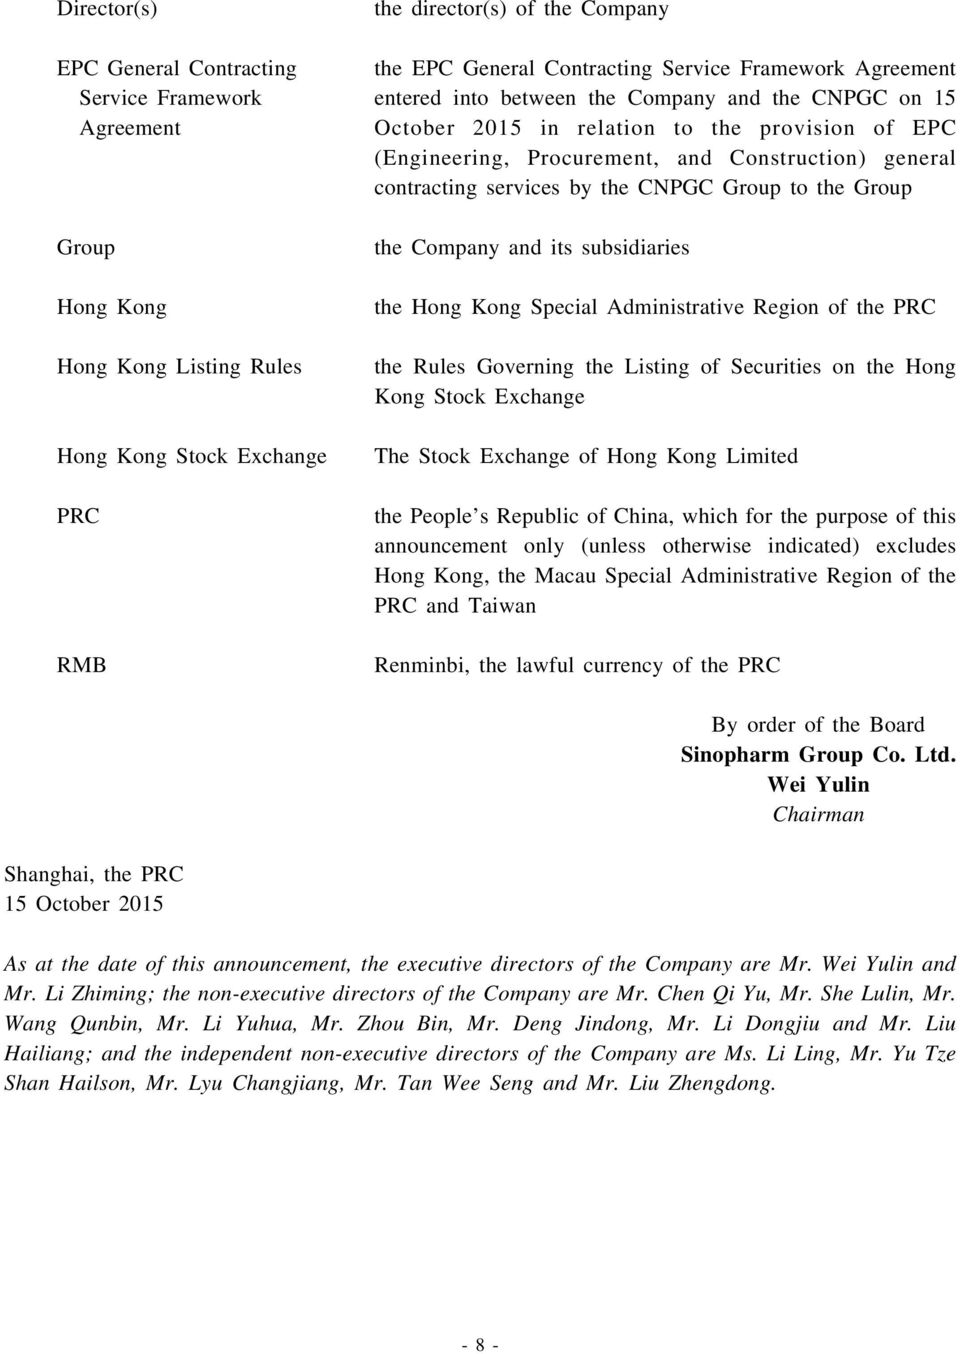 services by the CNPGC Group to the Group the Company and its subsidiaries the Hong Kong Special Administrative Region of the PRC the Rules Governing the Listing of Securities on the Hong Kong Stock